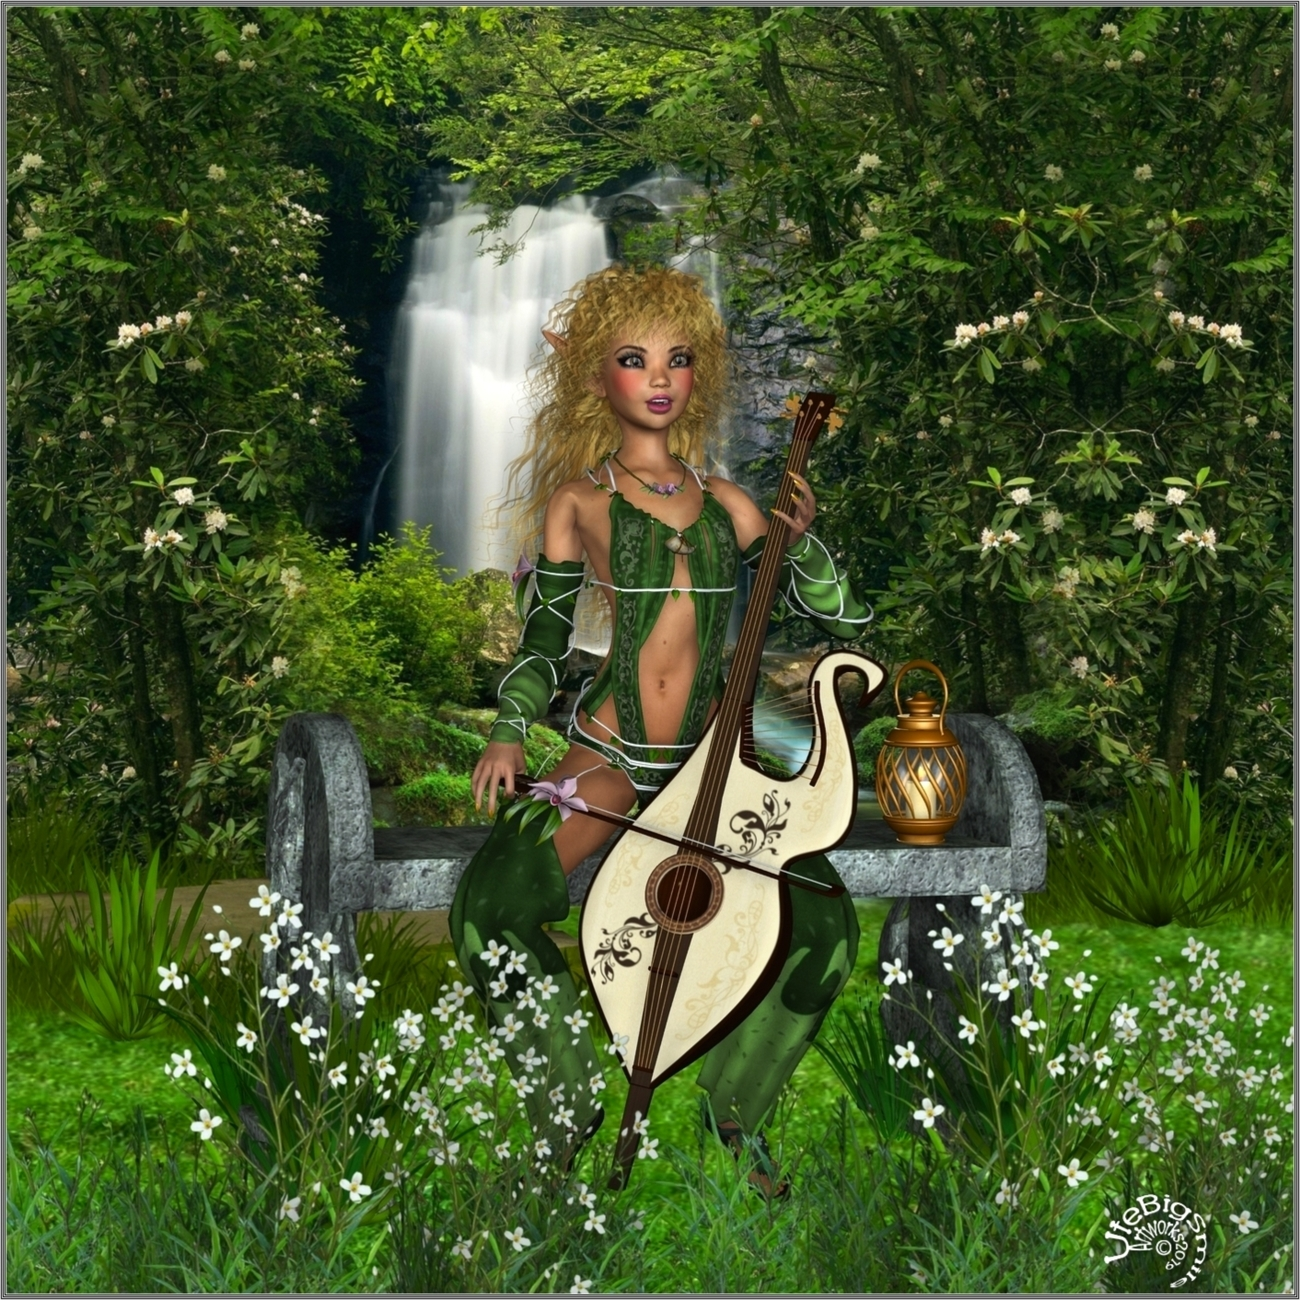 ☼ Alena the little forest Nymph ☼